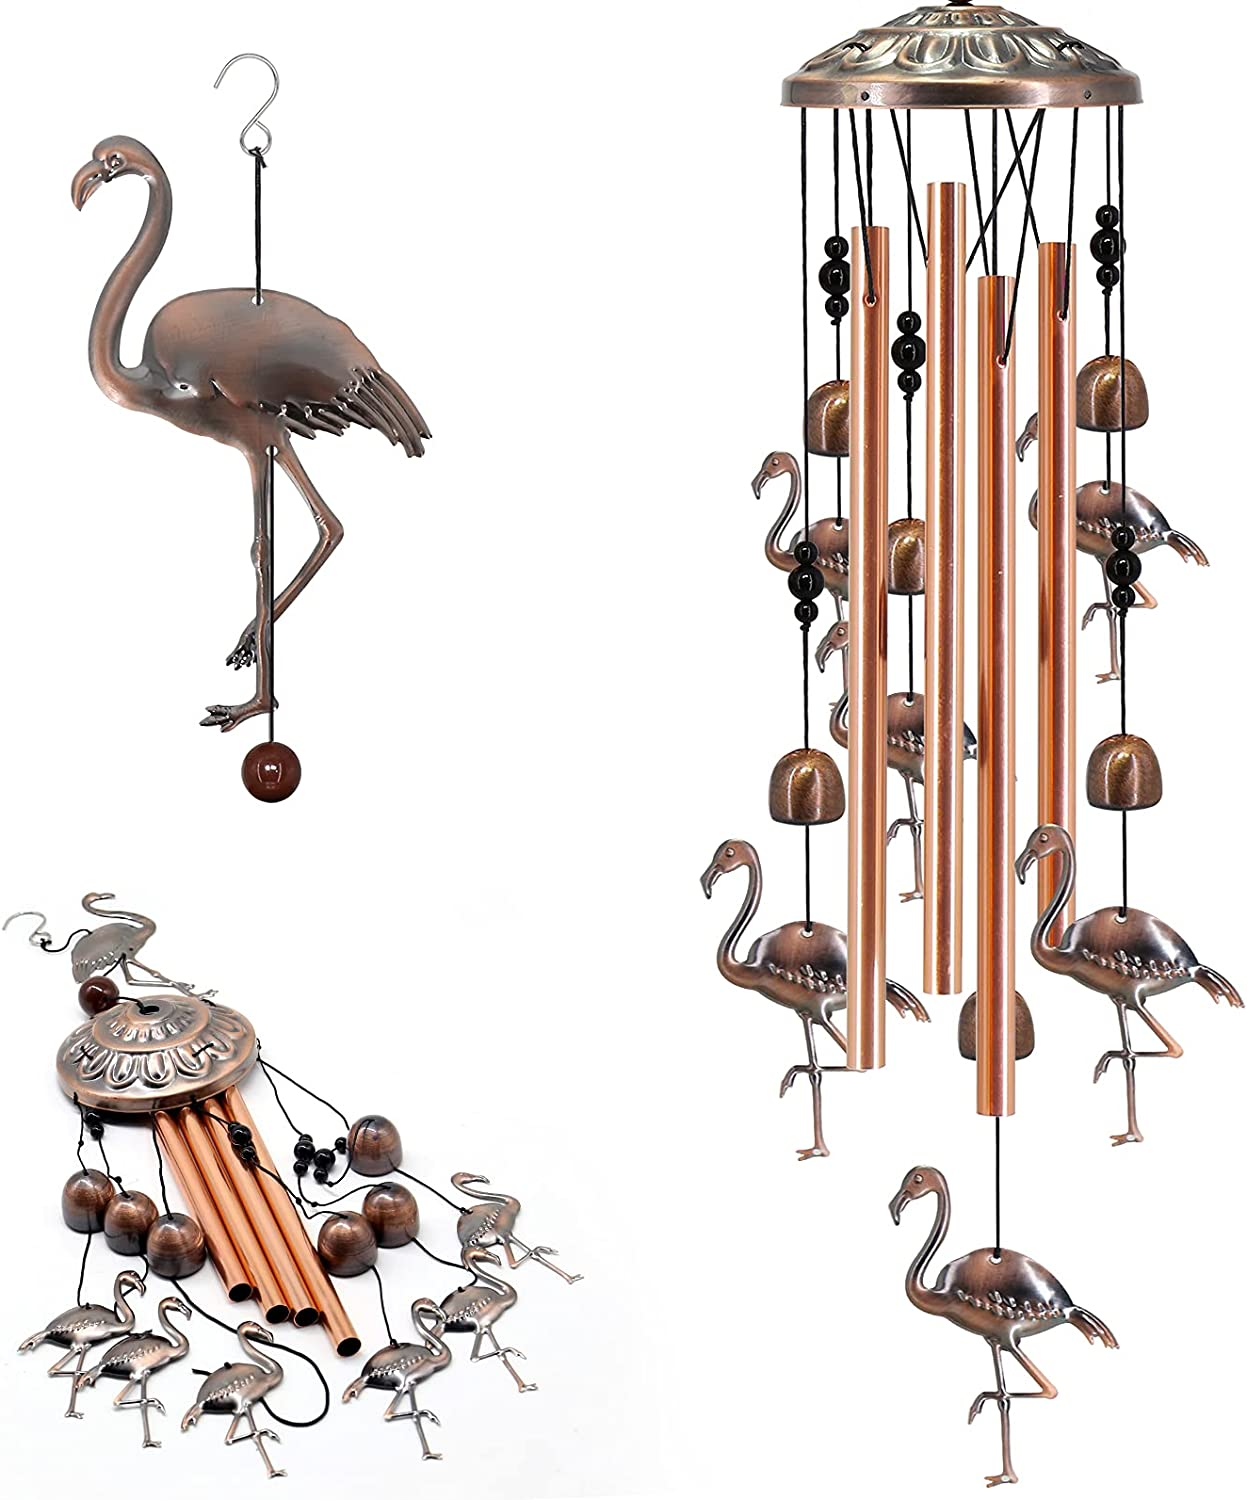 Wind Chimes for Outside, Bird Windchime Deep Tone with Metal Tubes & Hanging Hook Outdoor Decor for Garden Patio Porch Yard Backyard Memorial Wind Bell Best Gift for Loved Mom Grandma (Bronze)